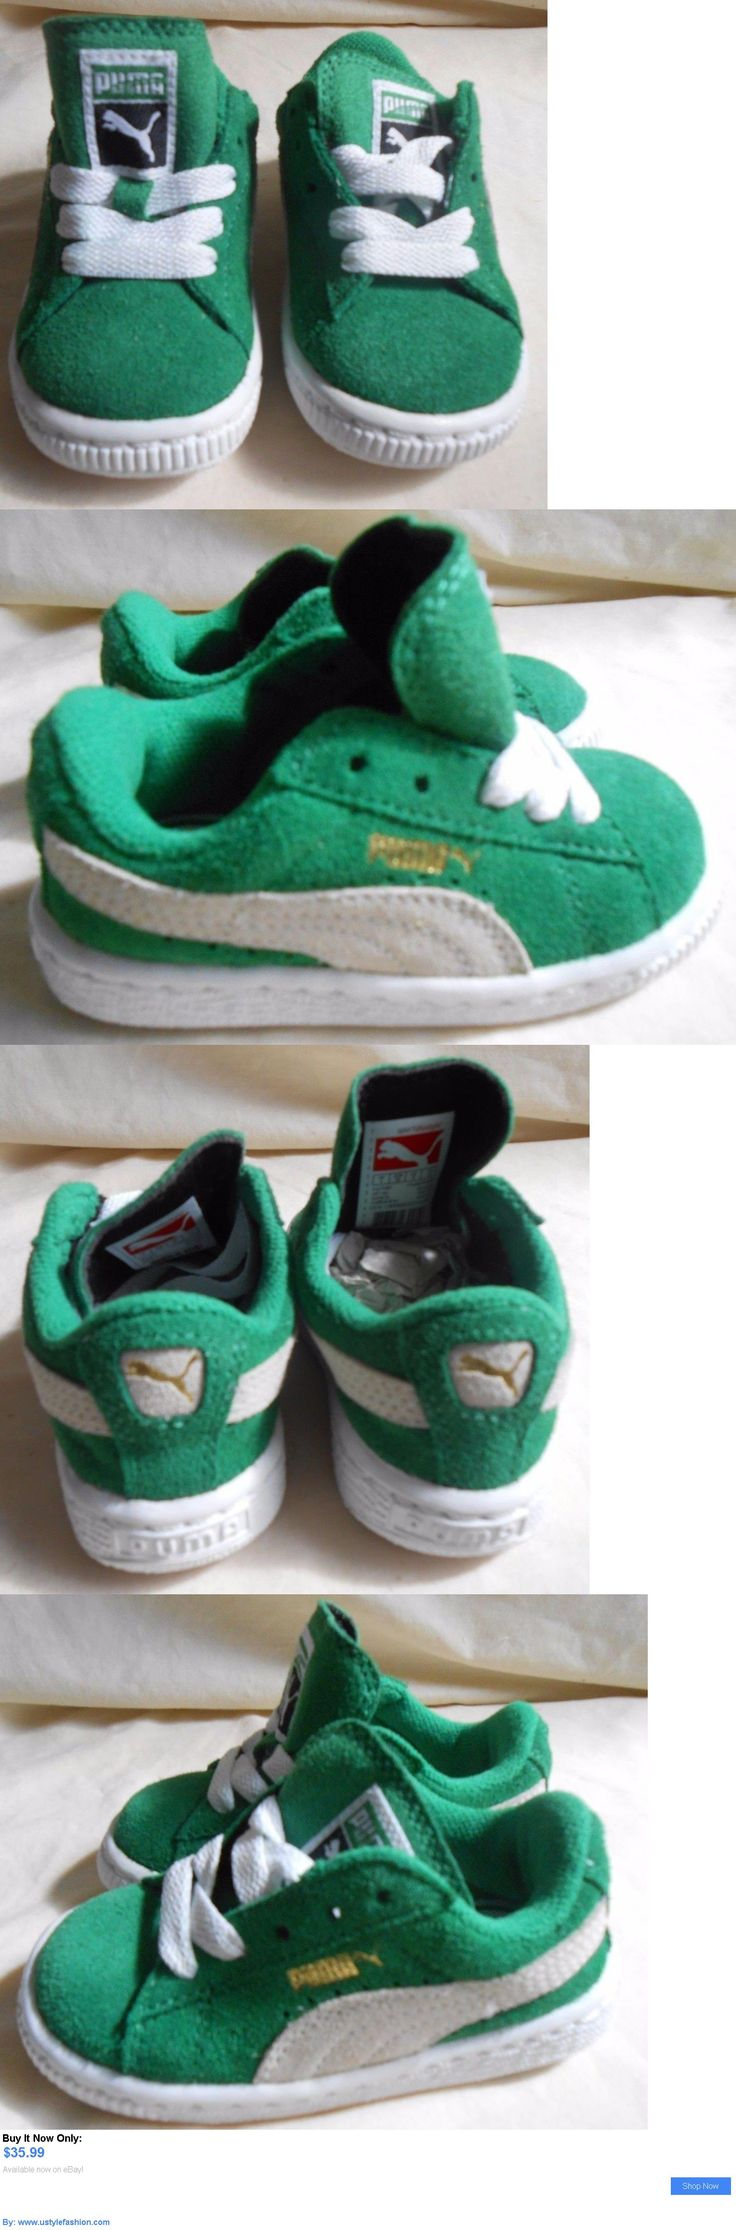 Baby boys clothing shoes and accessories: New Puma Suede Kids Simply Green / White Infant Toddler Sizes Sneakers Shoes BUY IT NOW ONLY: $35.99 #ustylefashionBabyboysclothingshoesandaccessories OR #ustylefashion